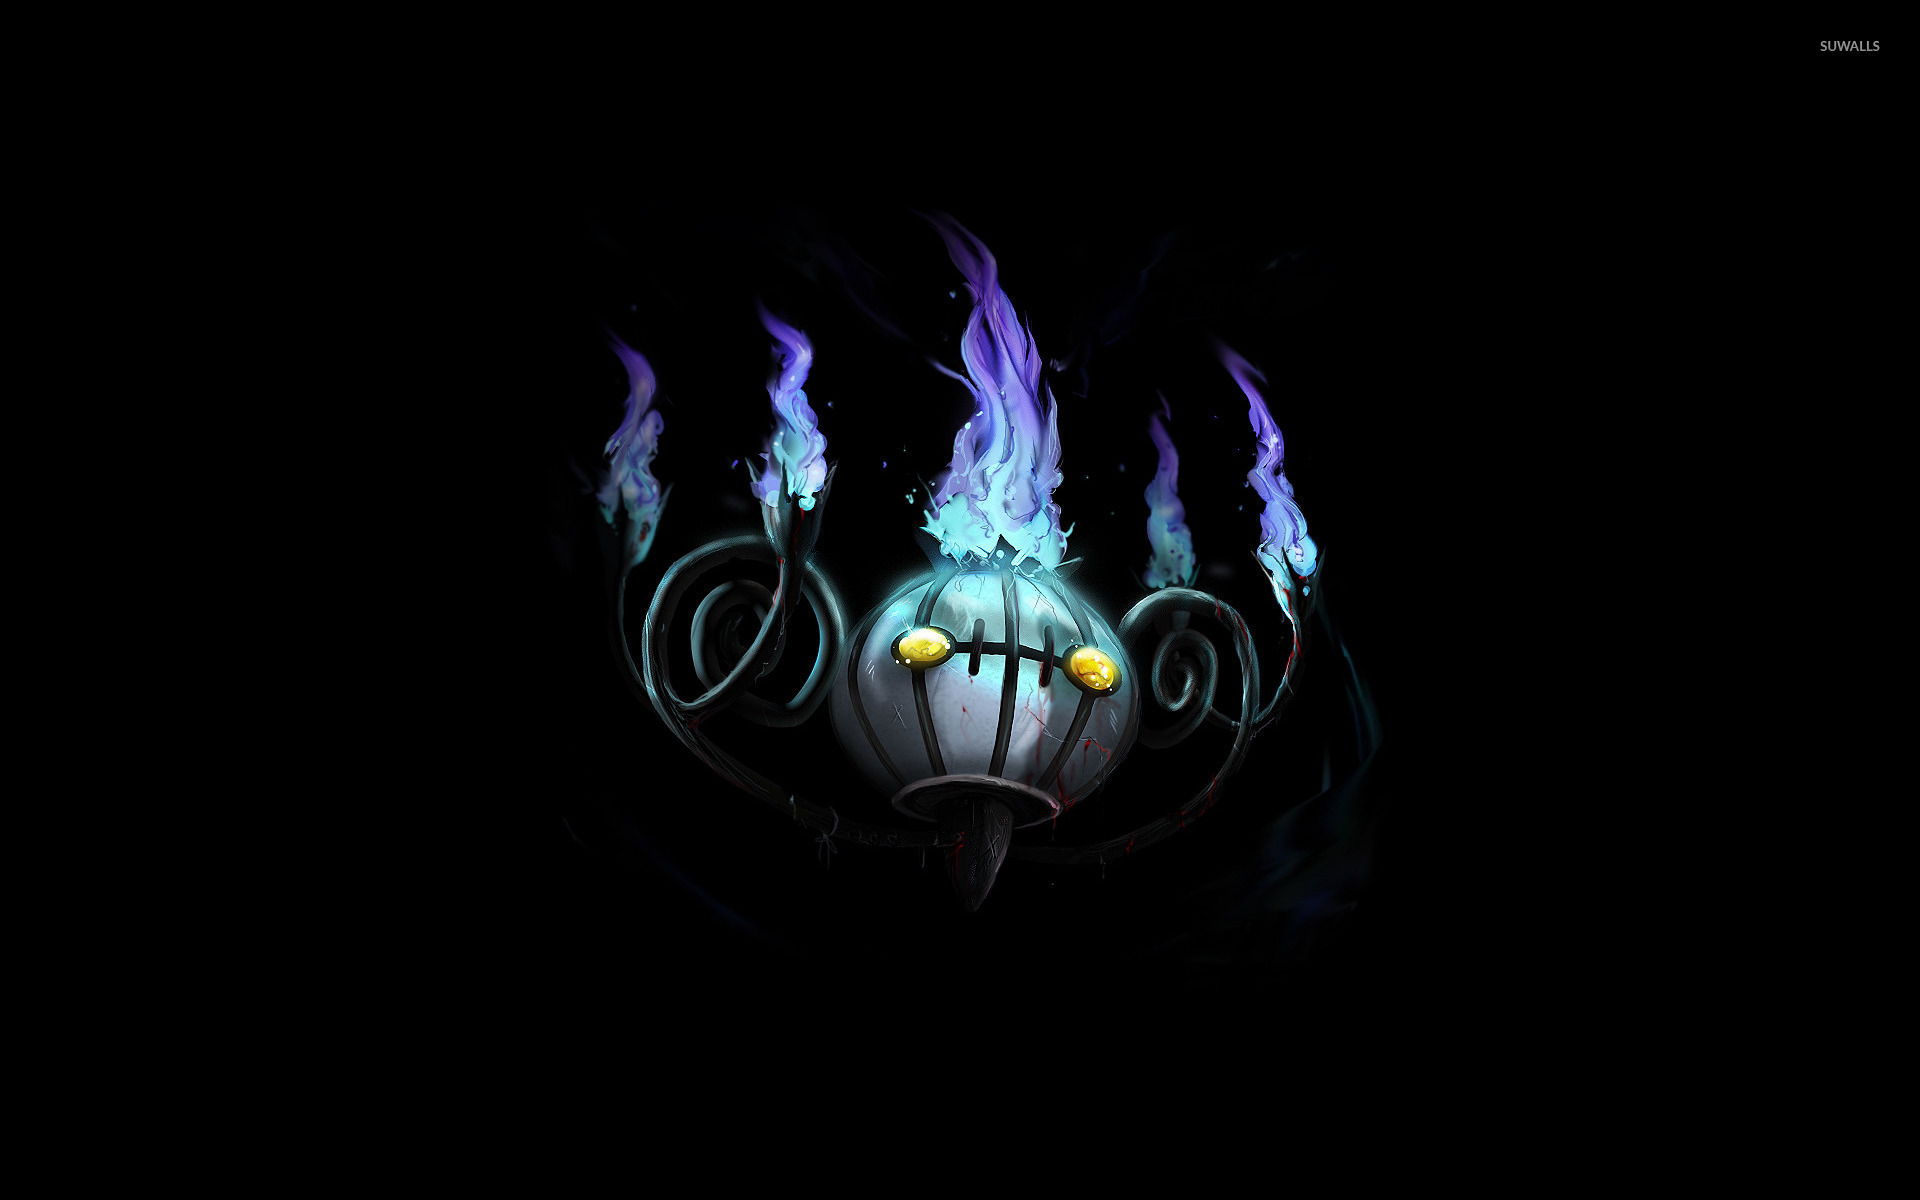 Chandelure pokemon wallpaper anime wallpapers 16082 for Wallpaper wallpaper wallpaper